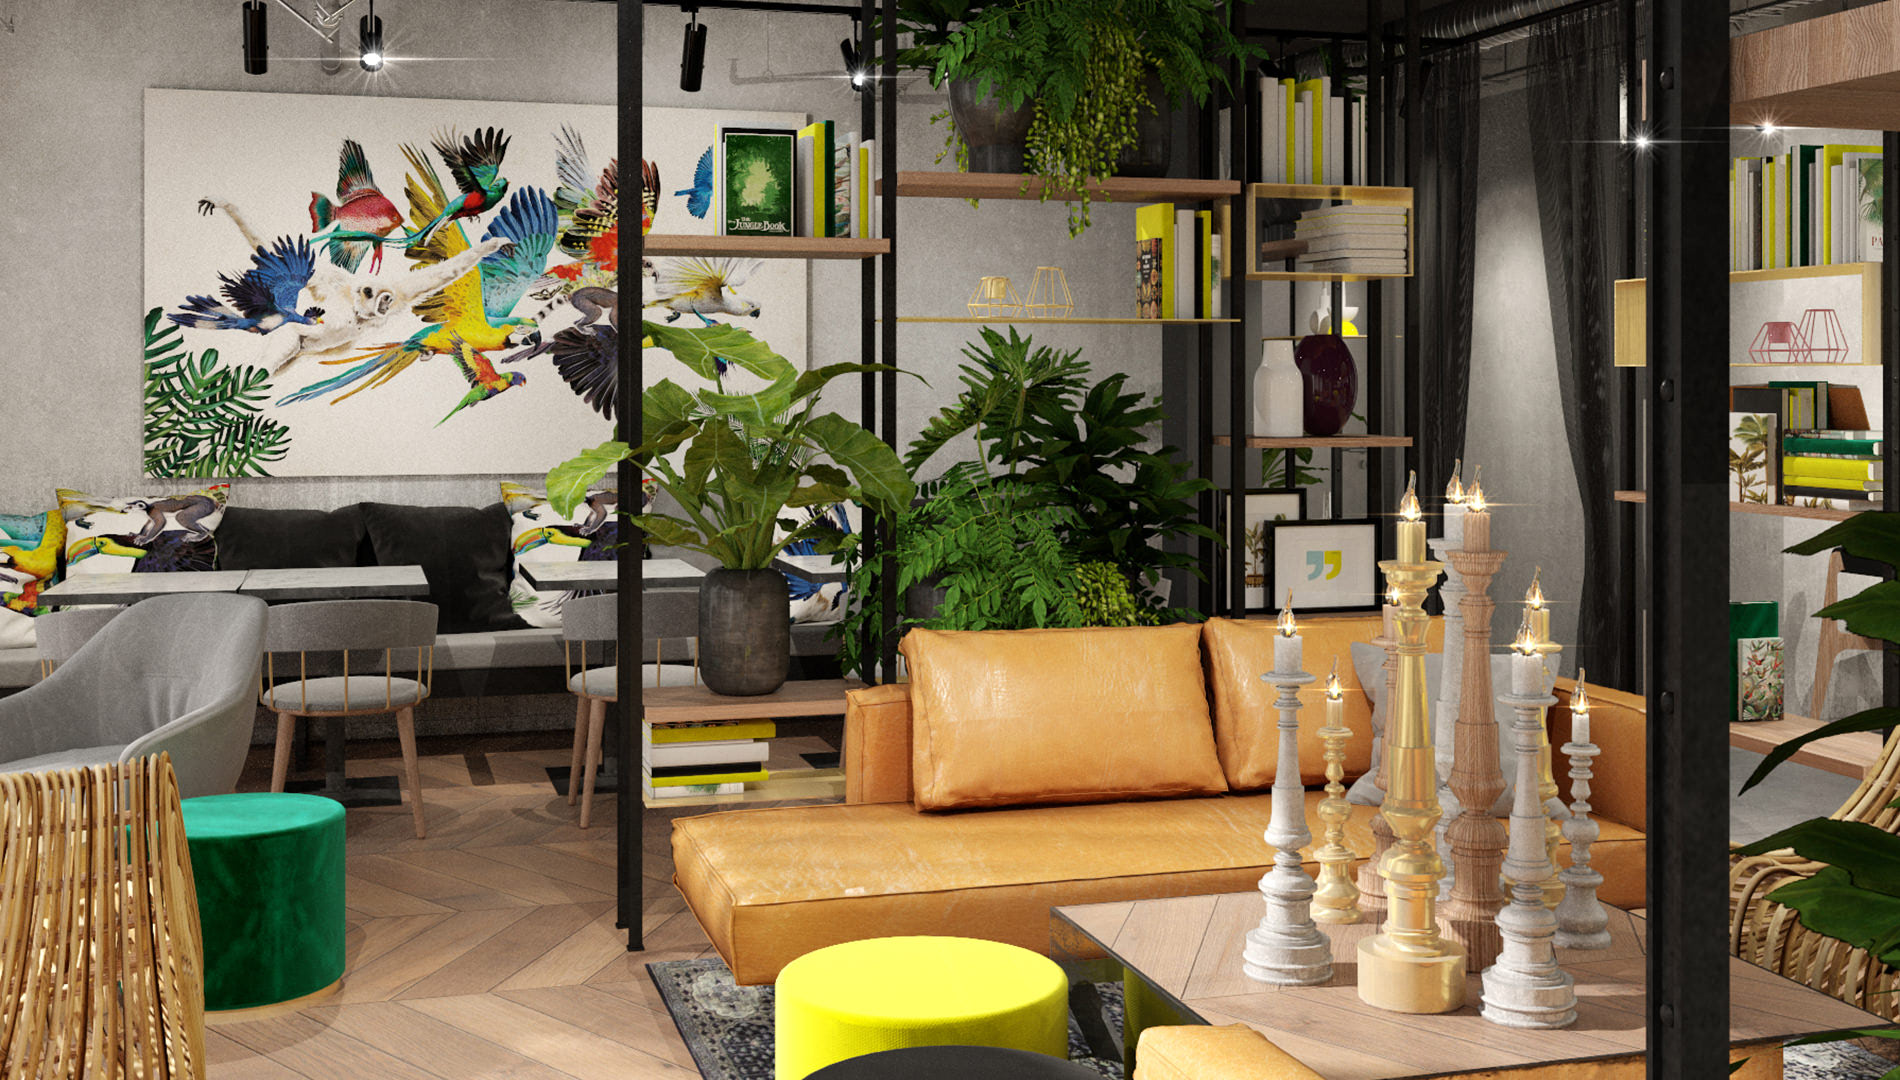 Destinationsentwicklung Ninety Nine Hotels Wuppertal Hotel Design Lounge Sofa Going Places